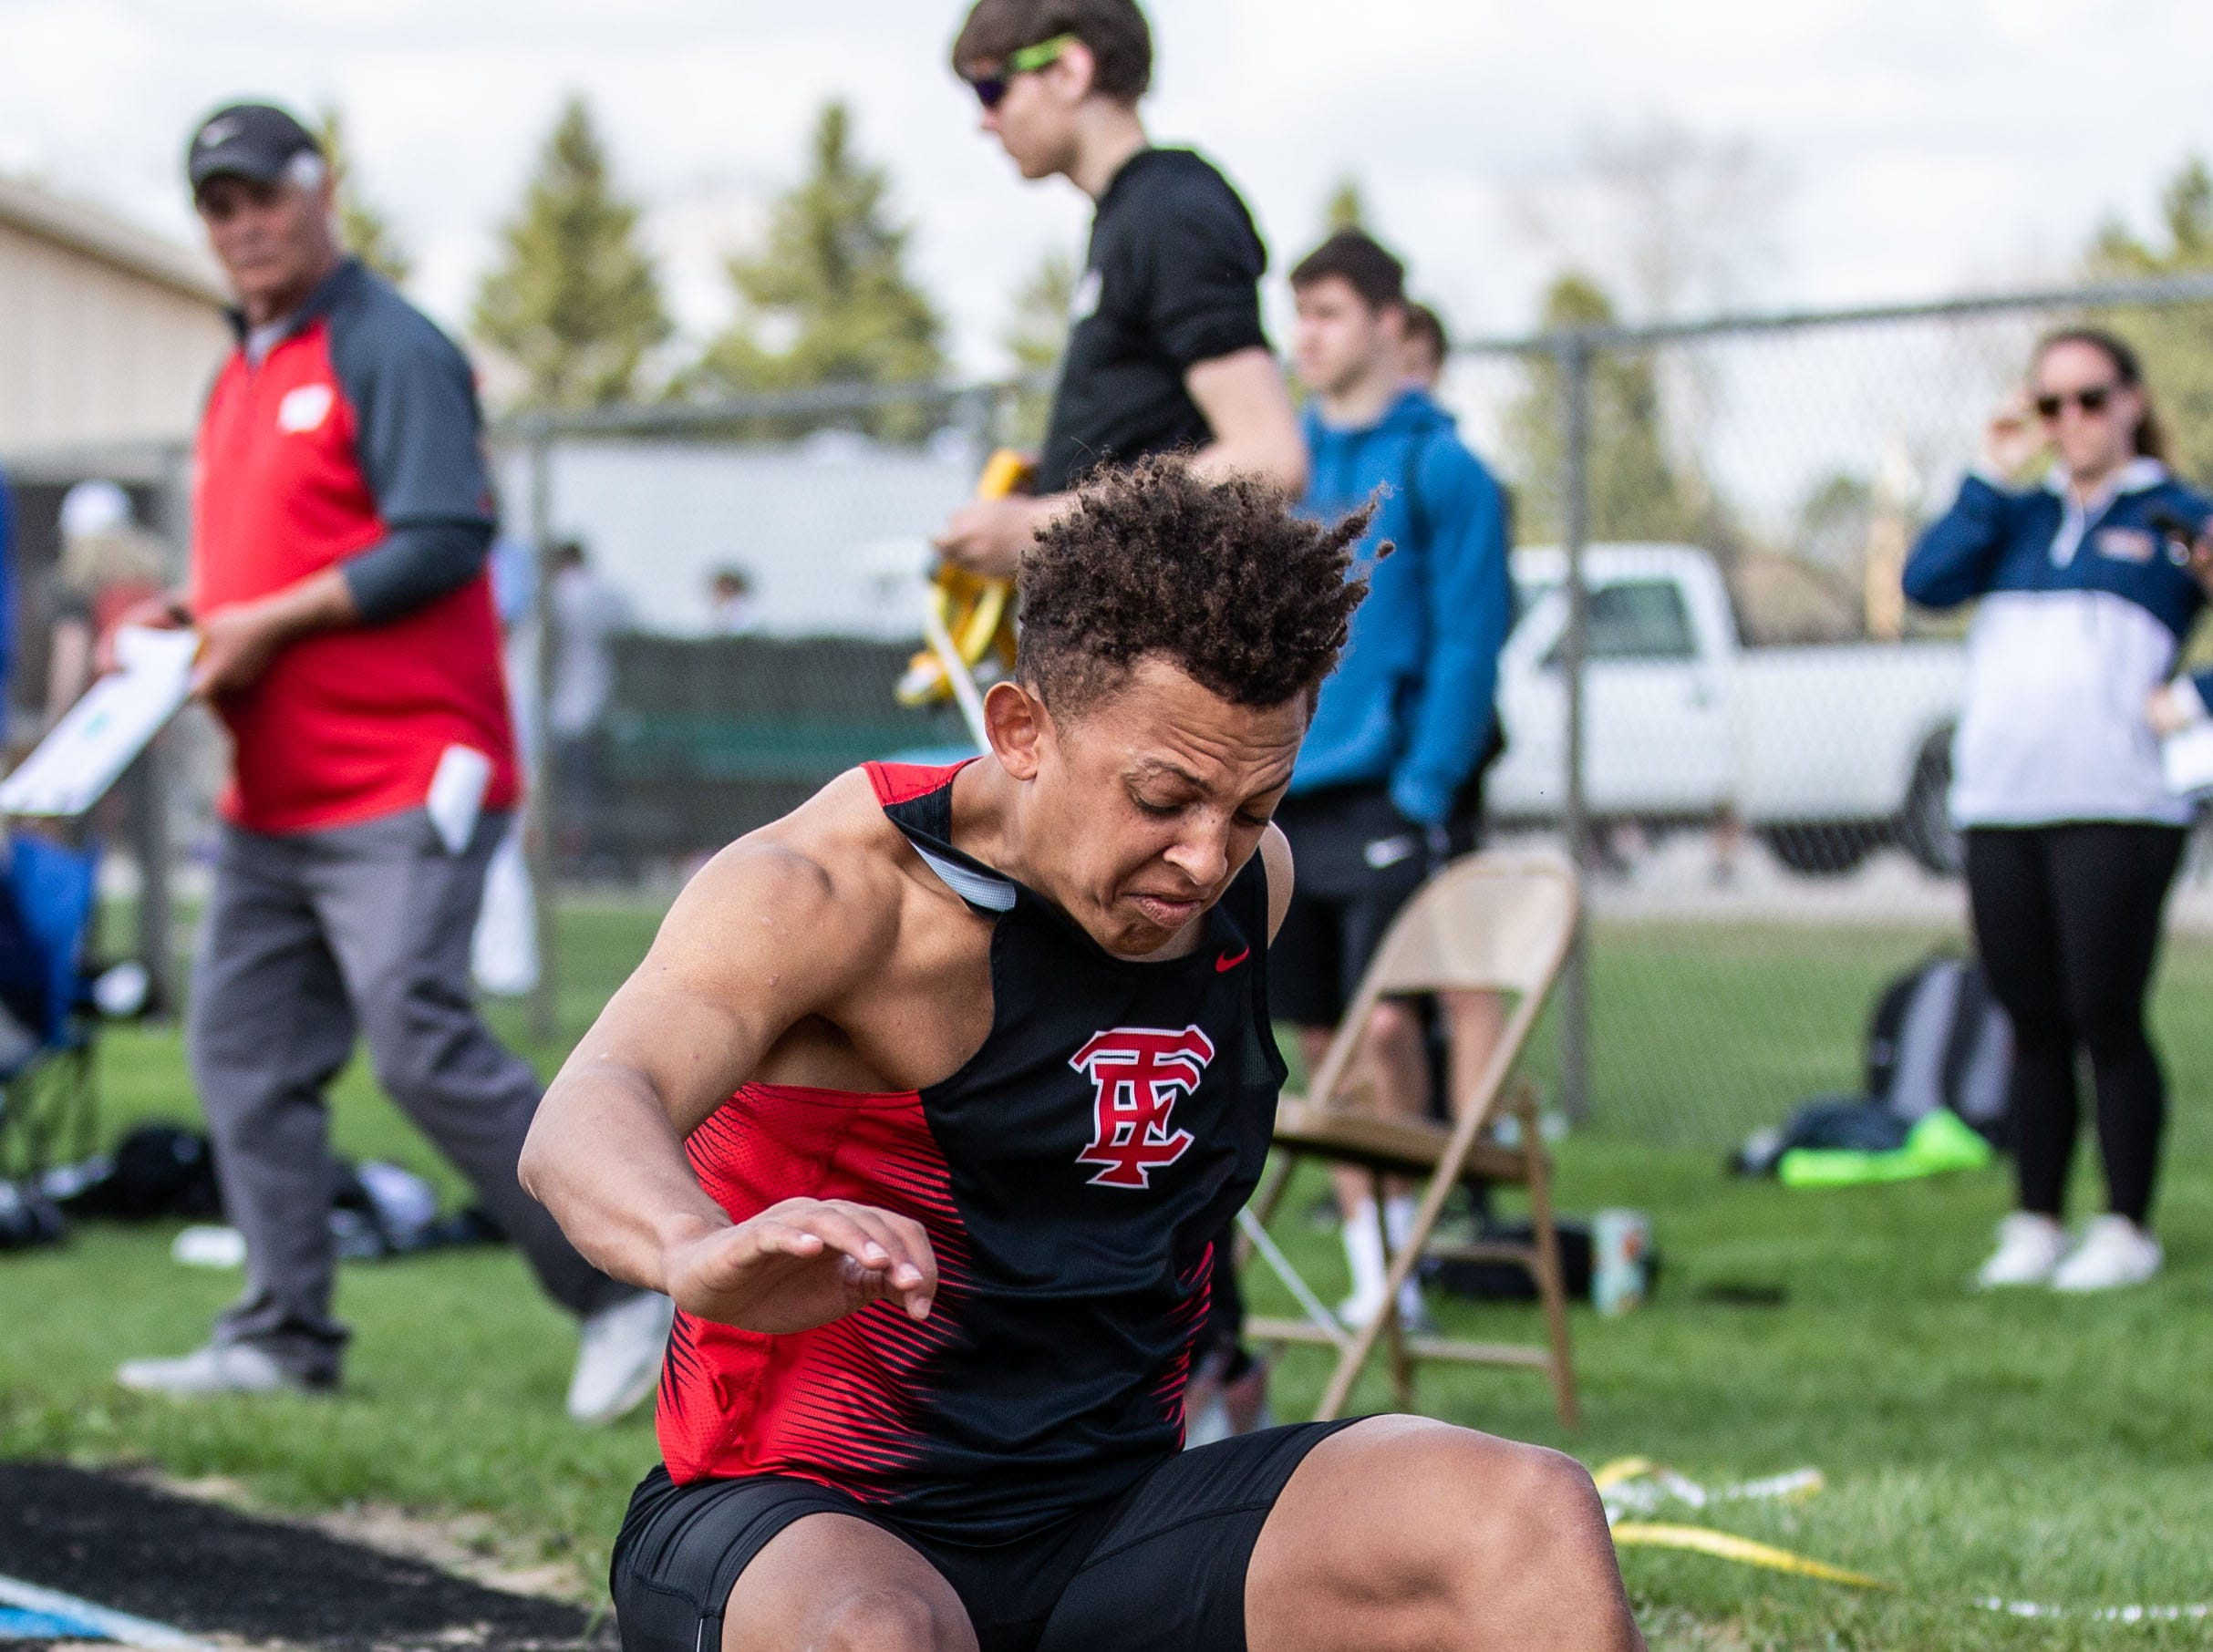 Wauwatosa East senior Jaxon Holley competes in the long jump at the 2019 Myrhum Invitational track and field meet in Hartland on Saturday, May 4.